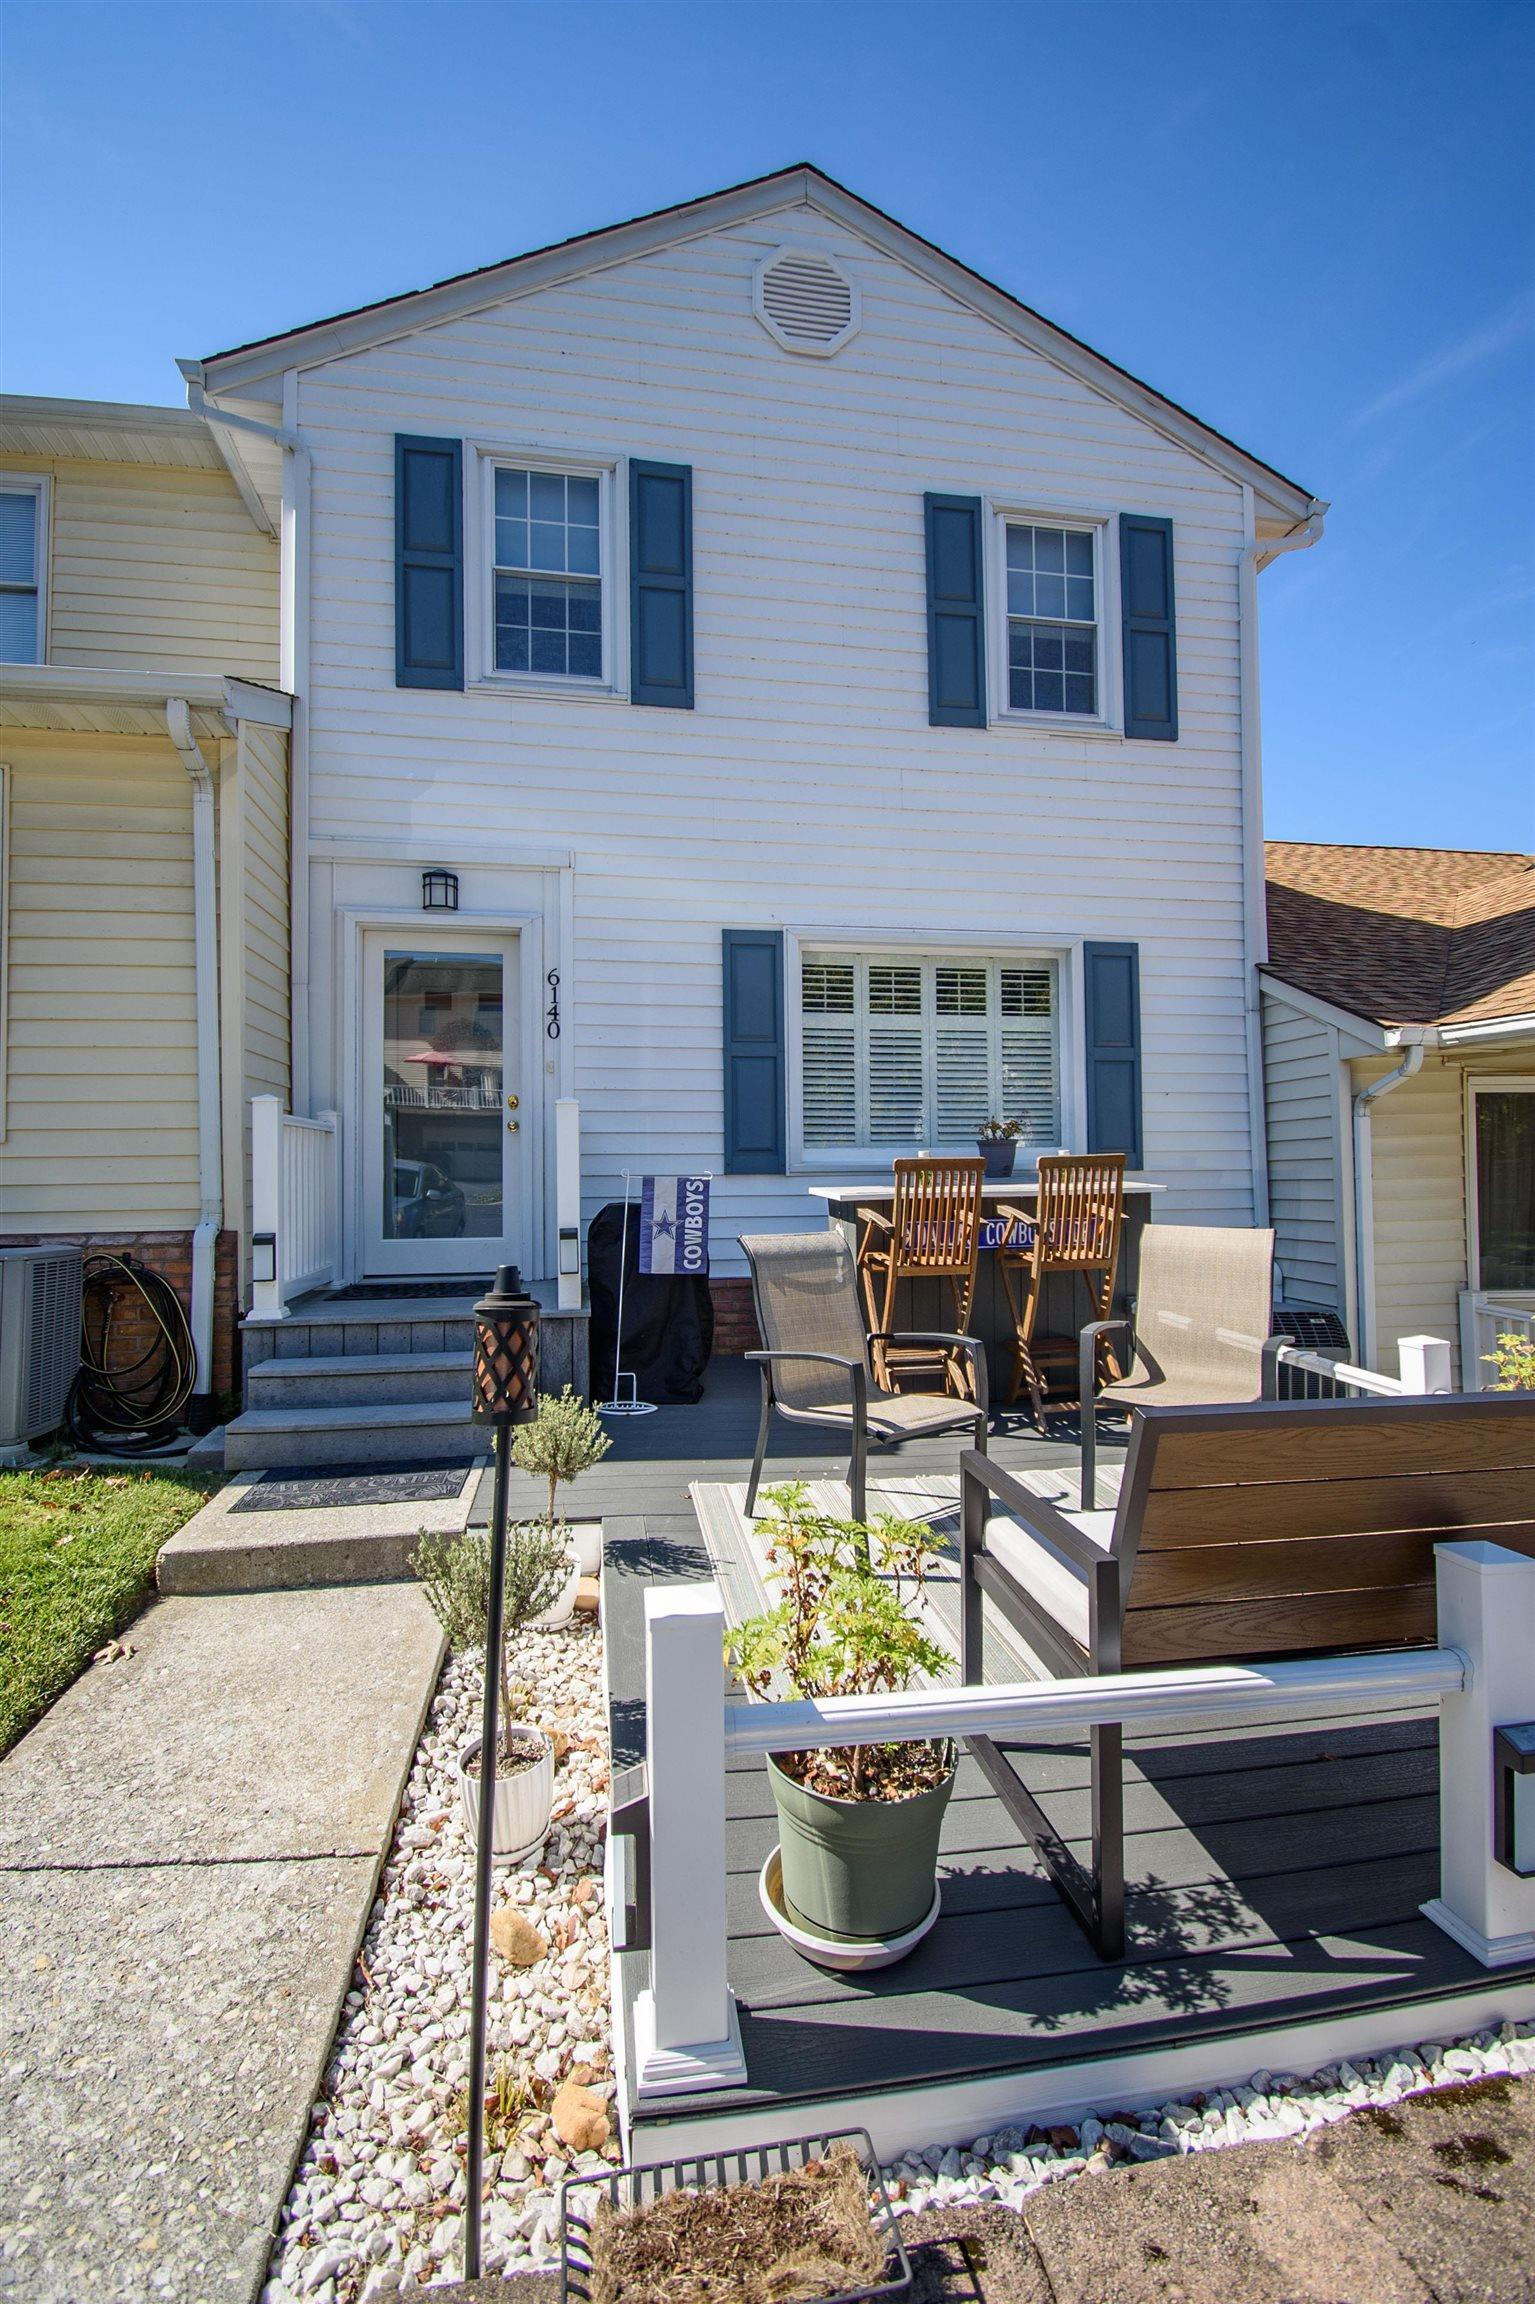 Well taken care of 2 bedroom 2.5 bath townhome located in a quiet neighborhood. Home features: bar area for entertainment, sunroom on main with french doors, LED lightbulbs in all fixtures, updated master bedroom, exterior front deck with bar.